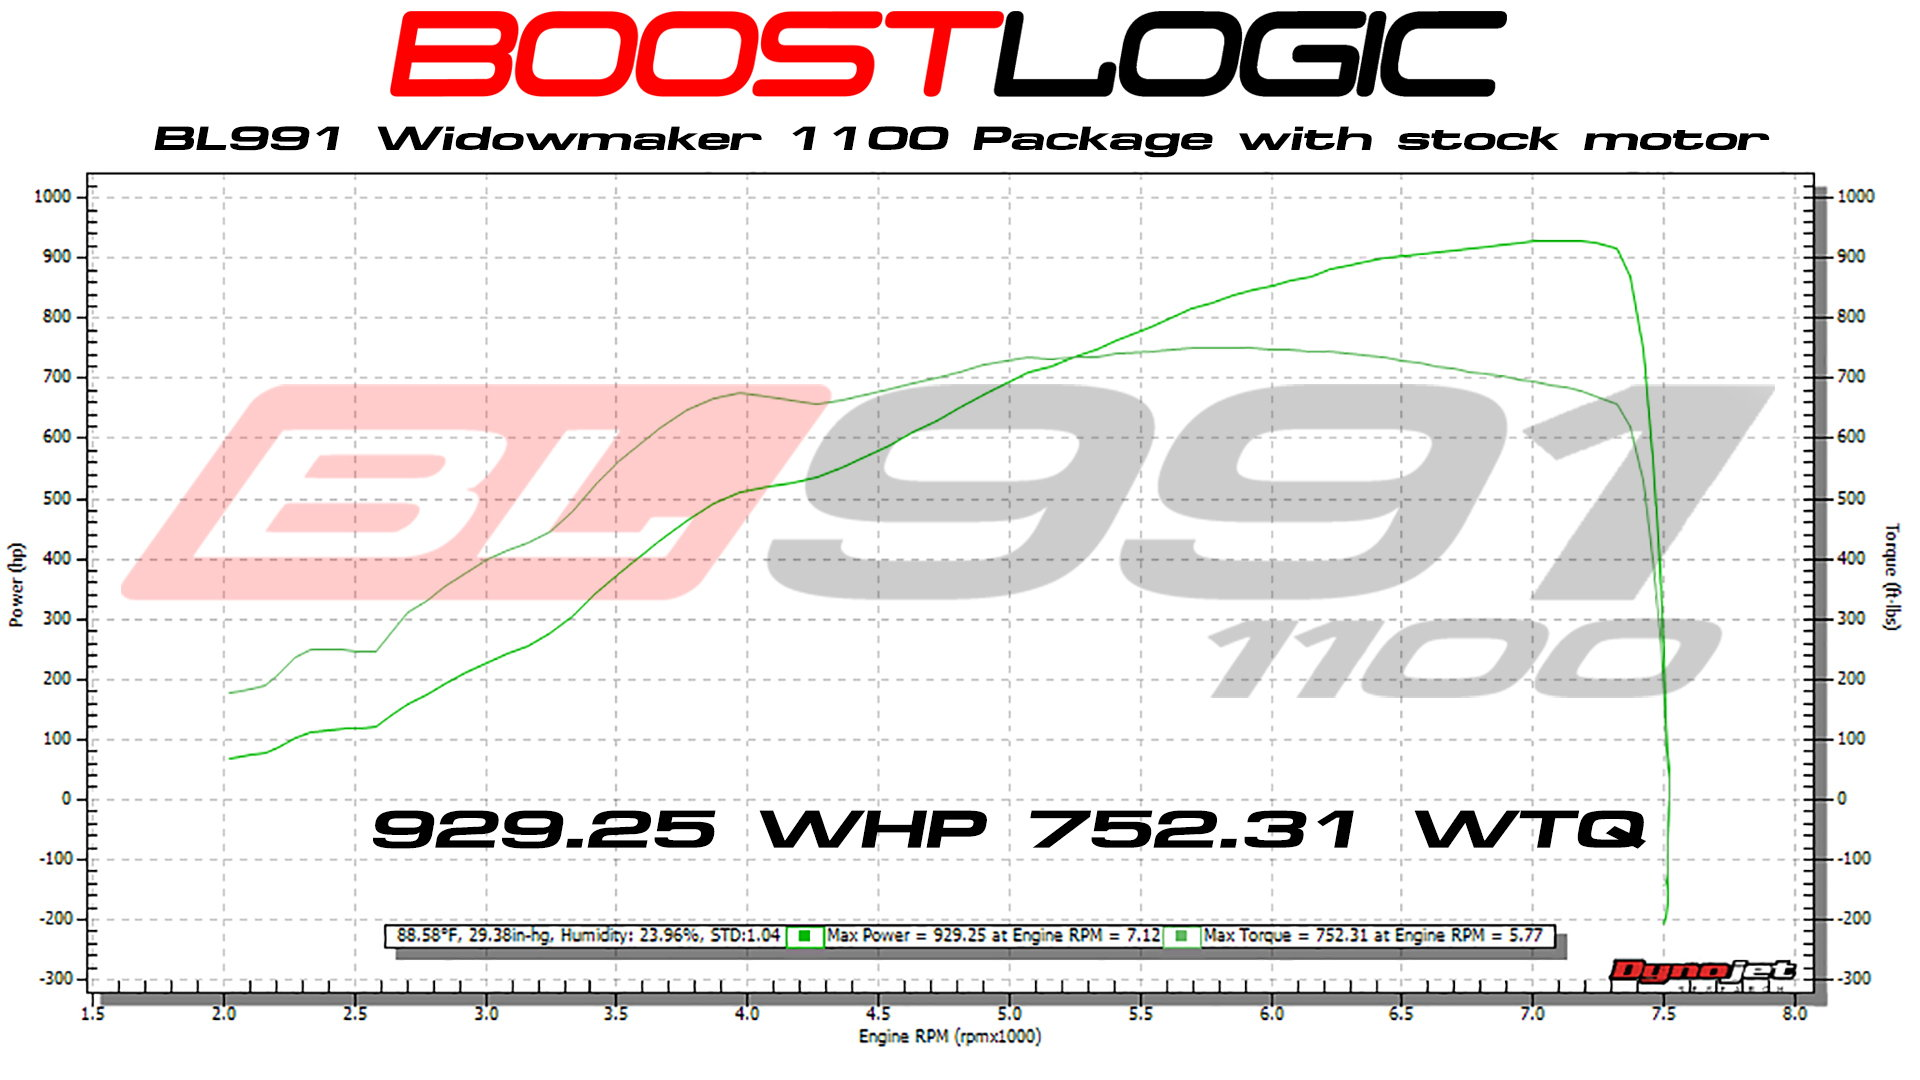 Boost Logic 991 Widowmaker 1100 Package With Stock Motor Build Porsche Engine Diagrams Stay Tuned From More Action This Car And Other Turbo Builds We Have Coming Soon